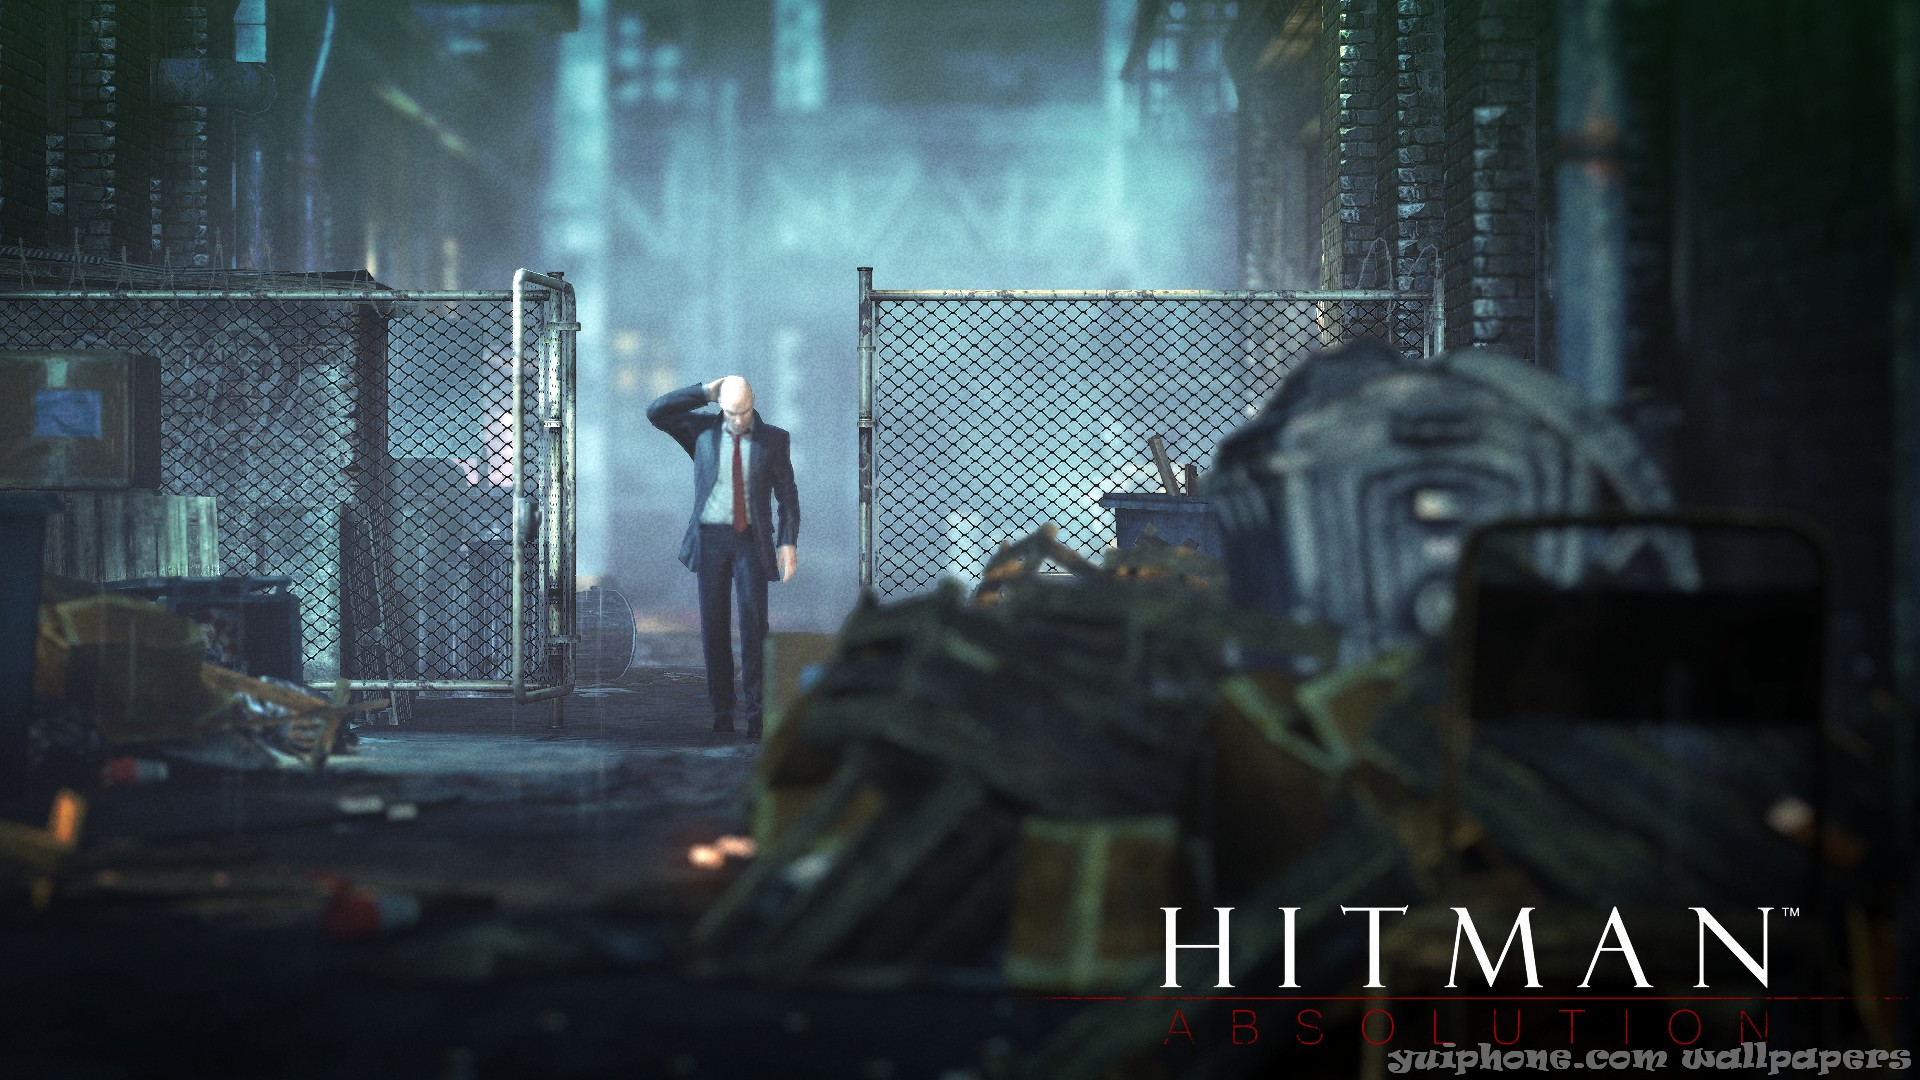 1920x1080px hitman absolution wallpaper 1080p - wallpapersafari